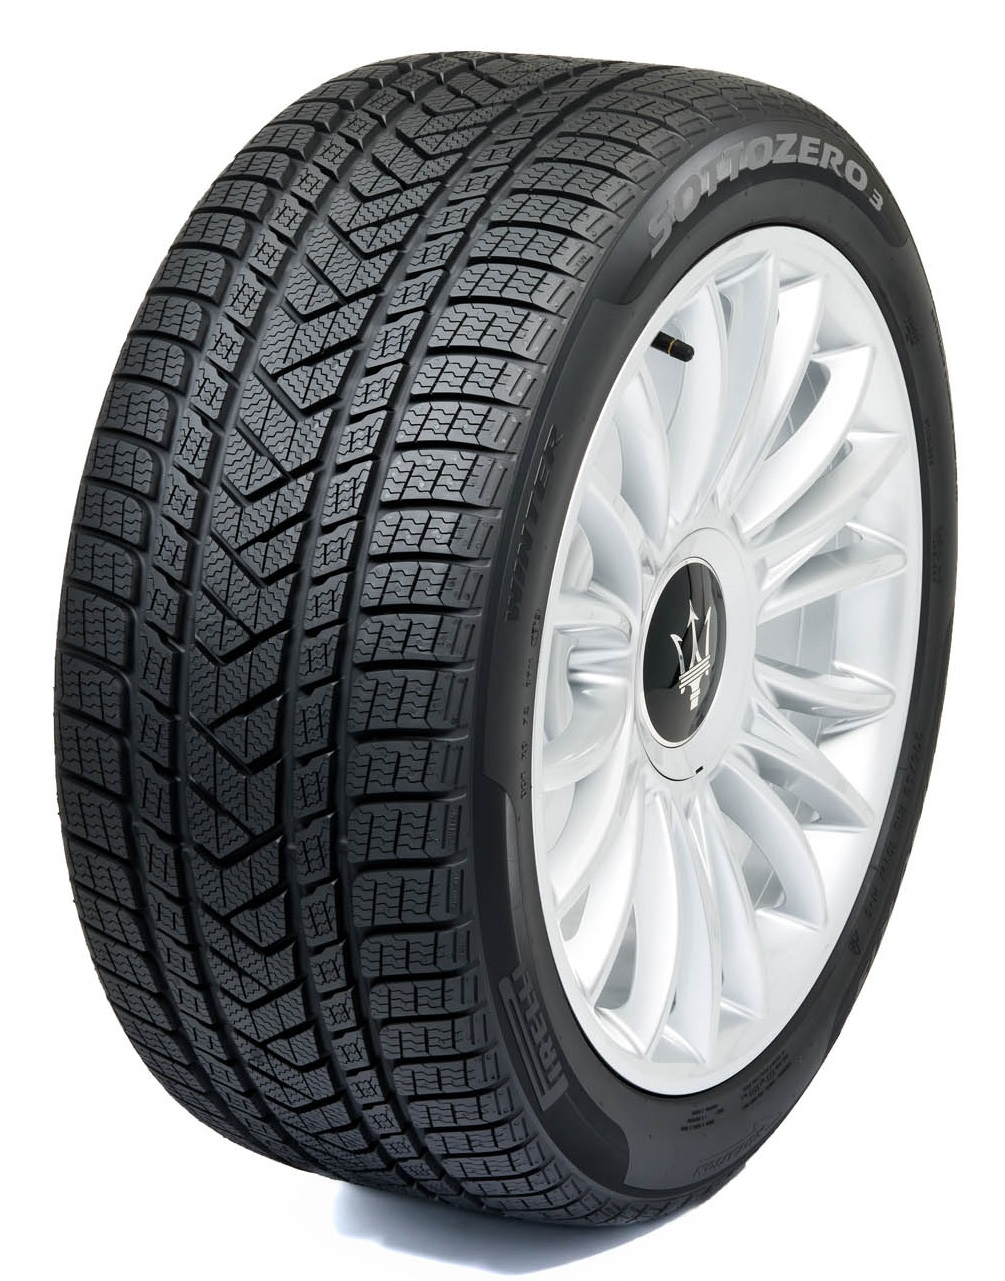 PIRELLI WINTER SOTTO ZERO 3 255/40R19 100V XL